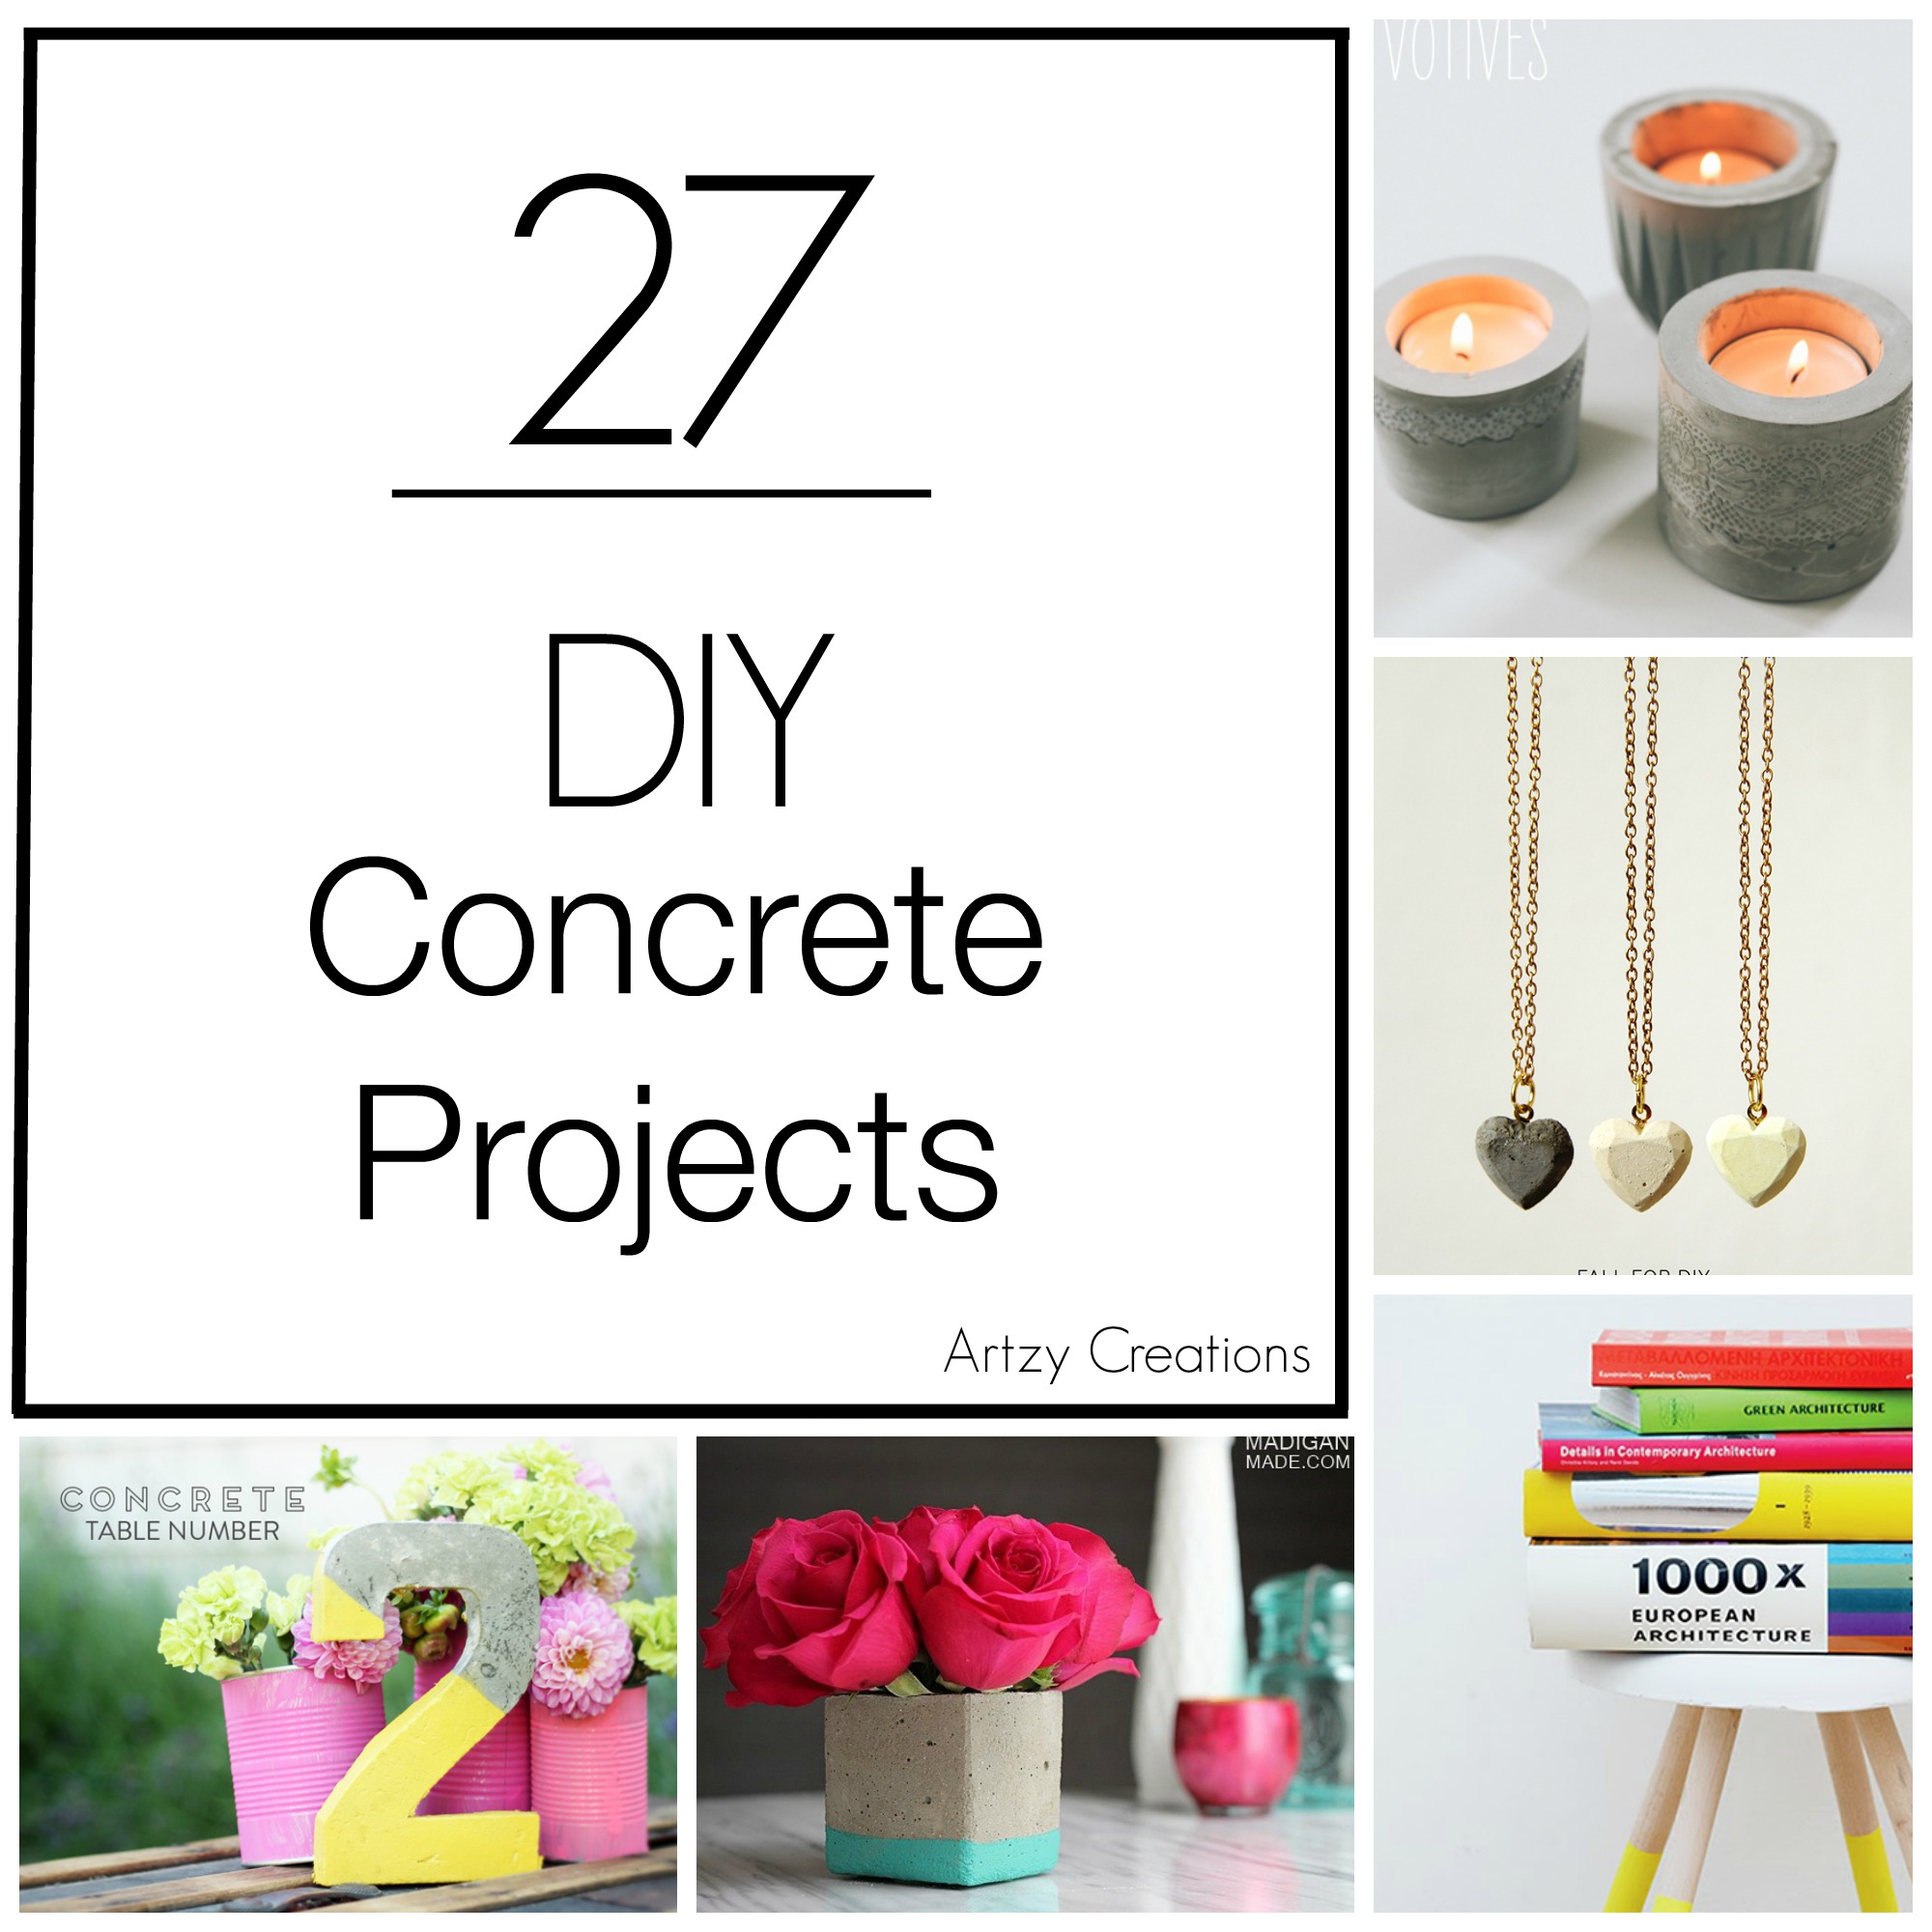 Artzy Creations_27 DIY Concrete Projects